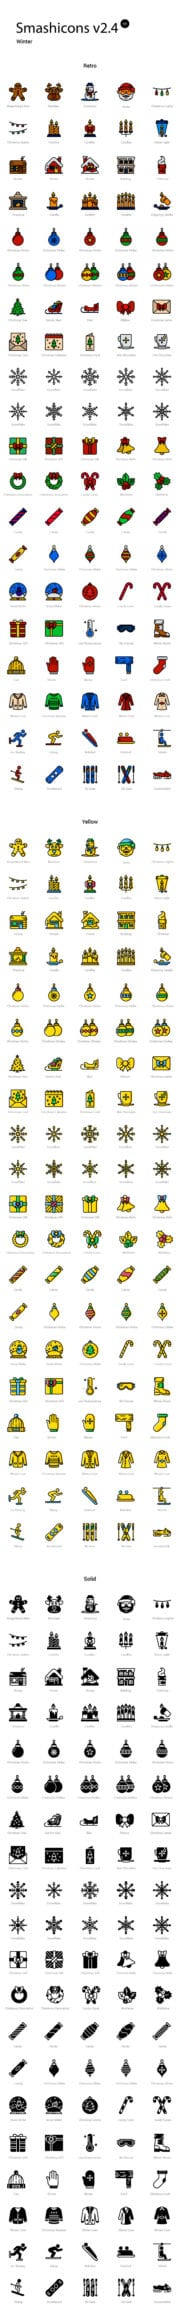 smashicons-winter-icons-600